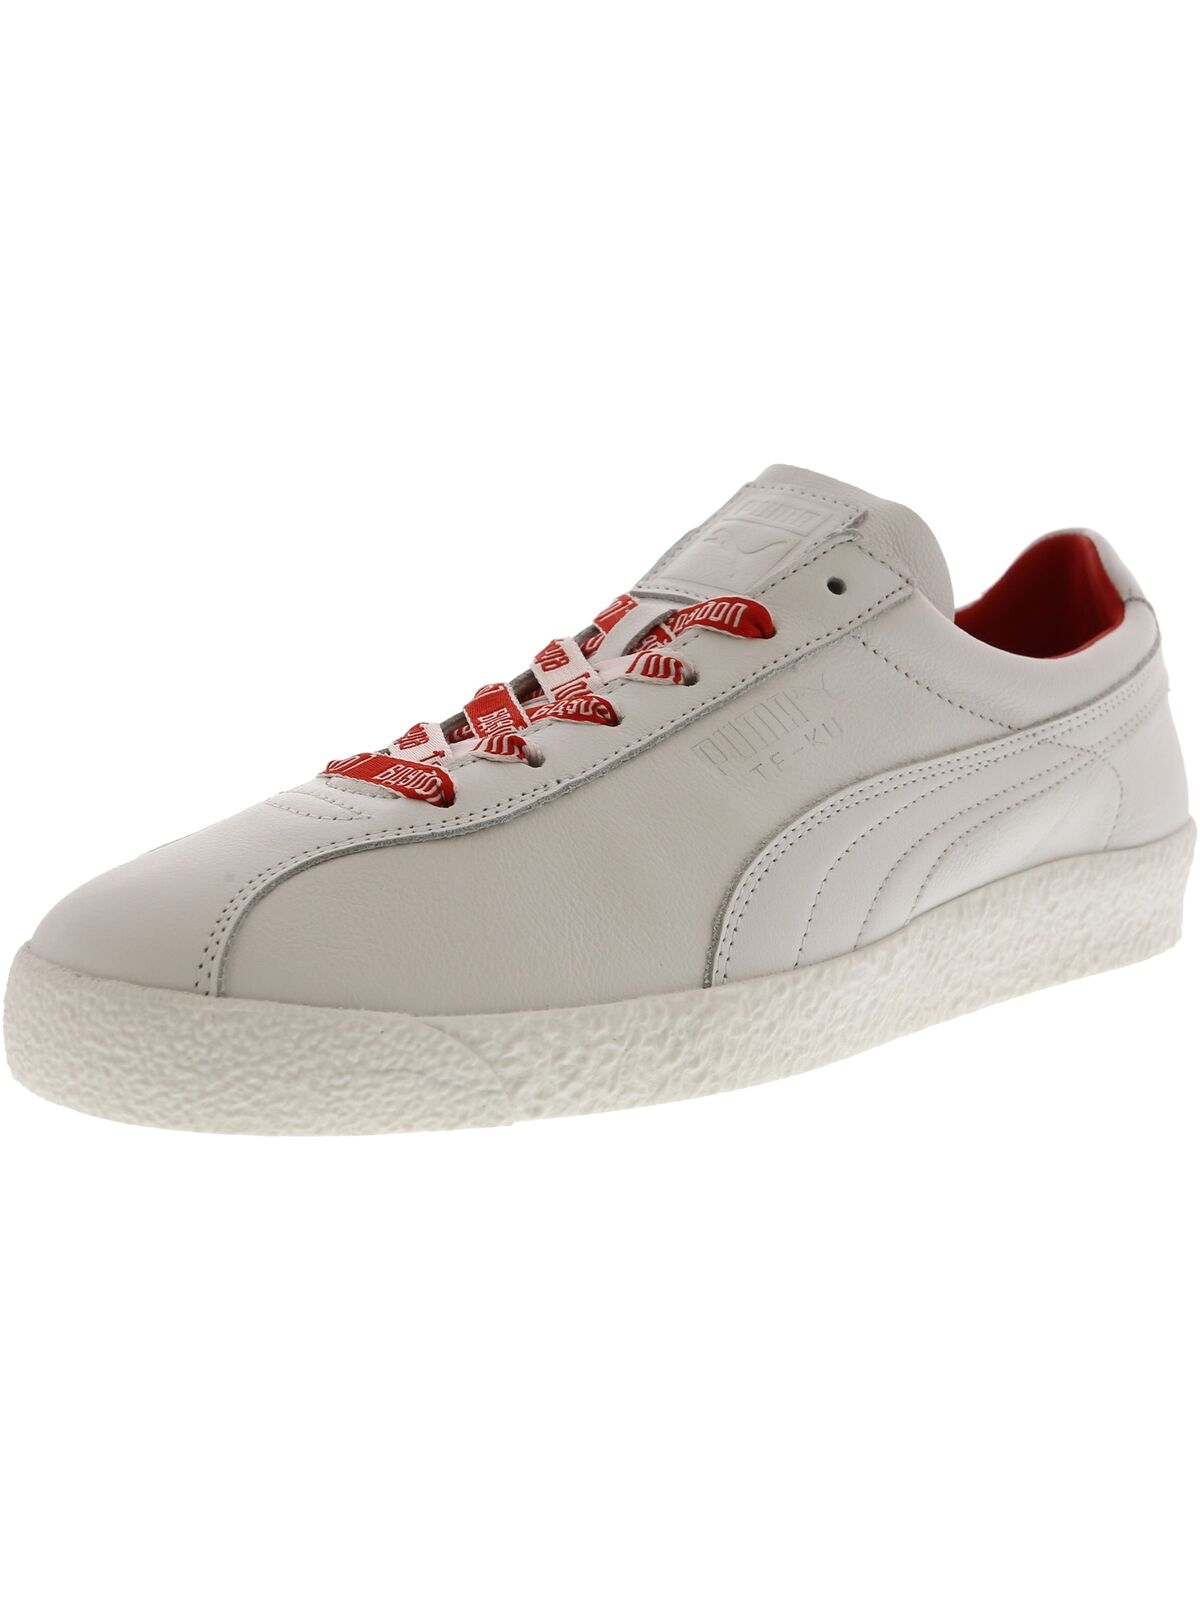 Puma Men's Te-Ku Russia Fm Ankle-High Leather Fashion Sneaker